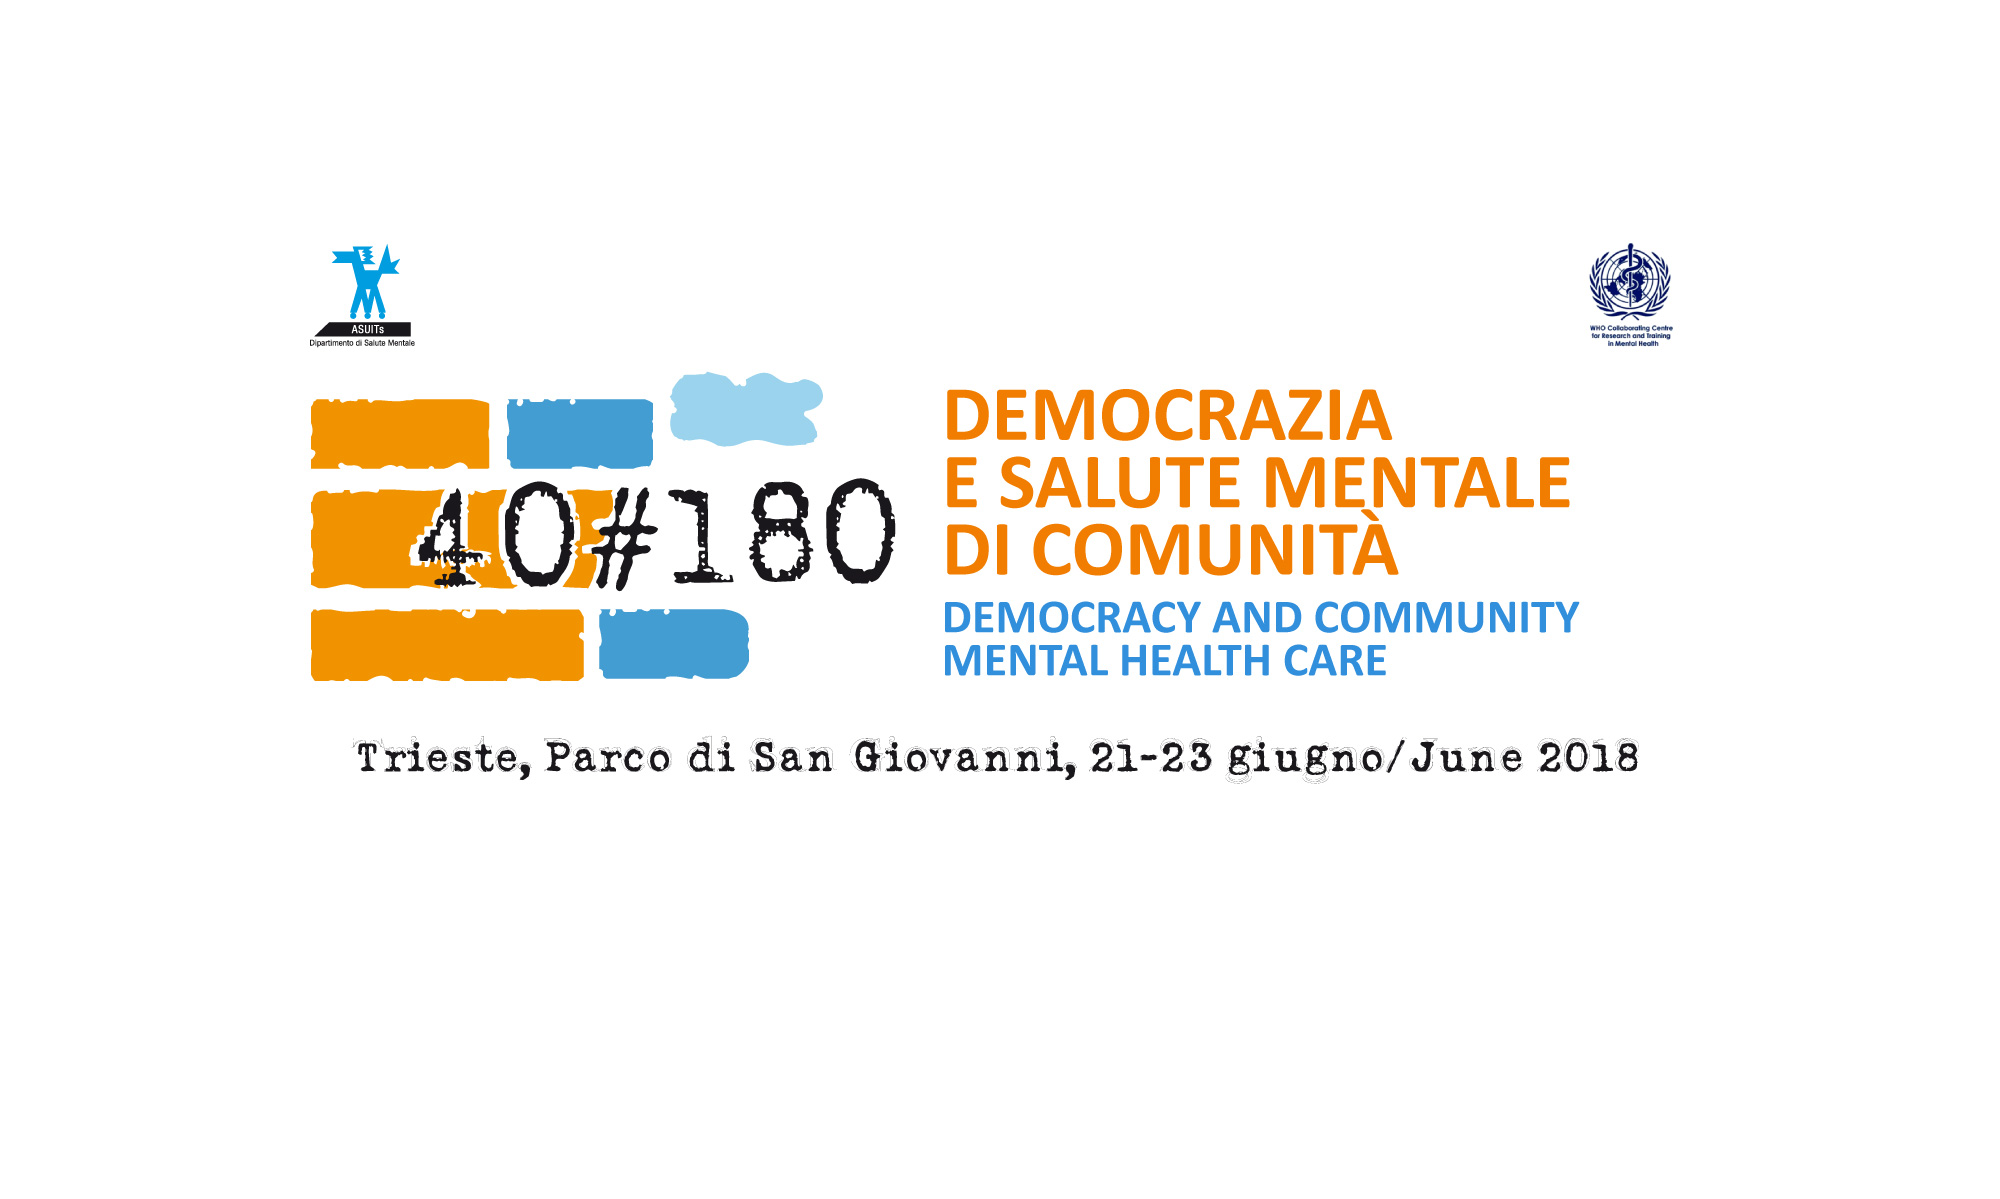 Democrazia e salute mentale di comunità /Democracy and community mental health care